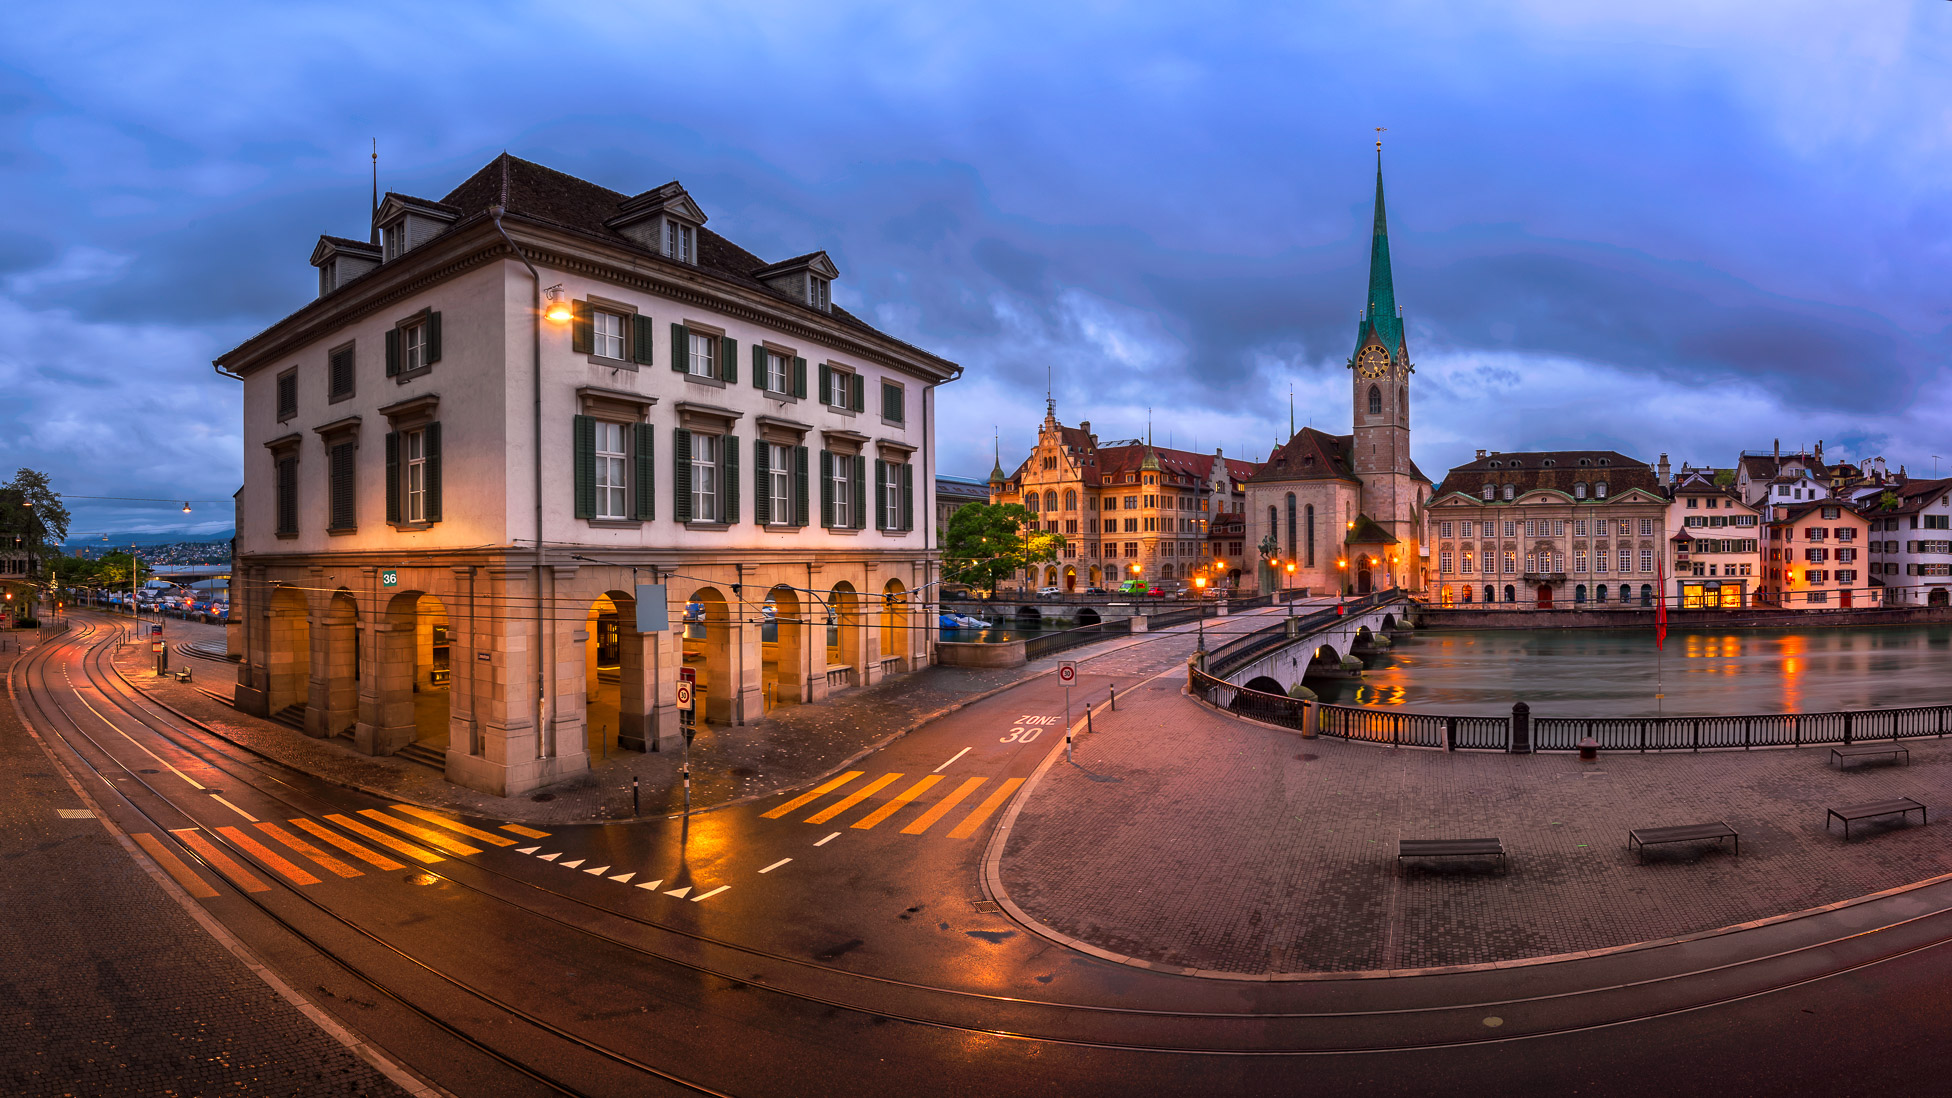 Panorama of Helmhaus and Fraumunster Church in the Morning, Zurich, Switzerland